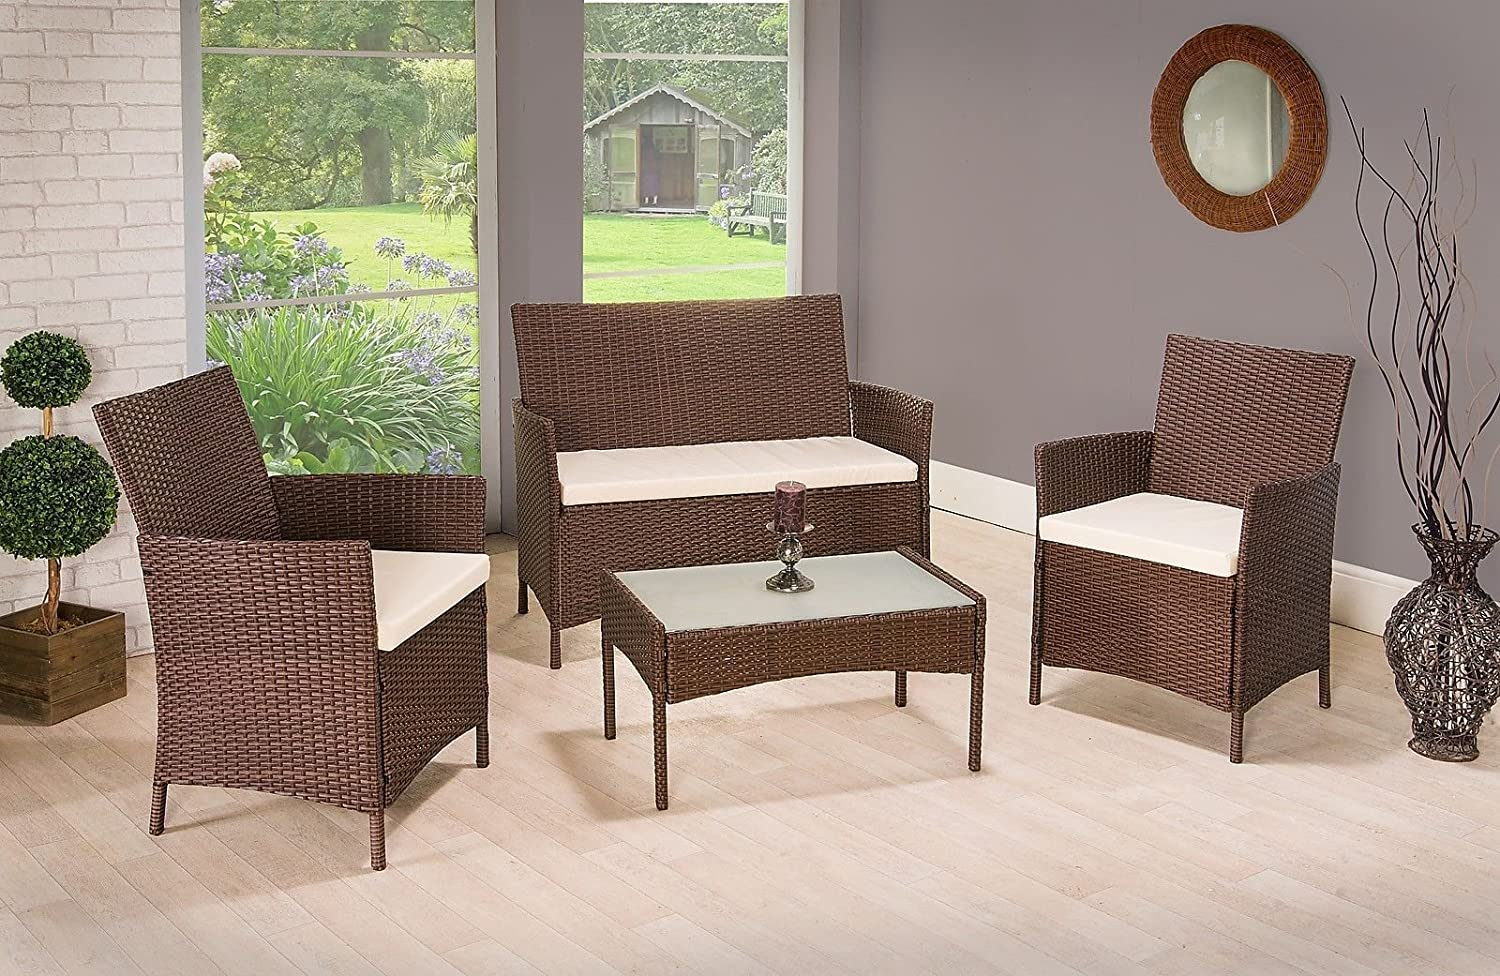 4 pieces 4 seater rattan garden furniture set 2 chairs 1 sofa 1 table outdoor patio conservatory amazoncouk kitchen home - Rattan Garden Furniture 4 Seater